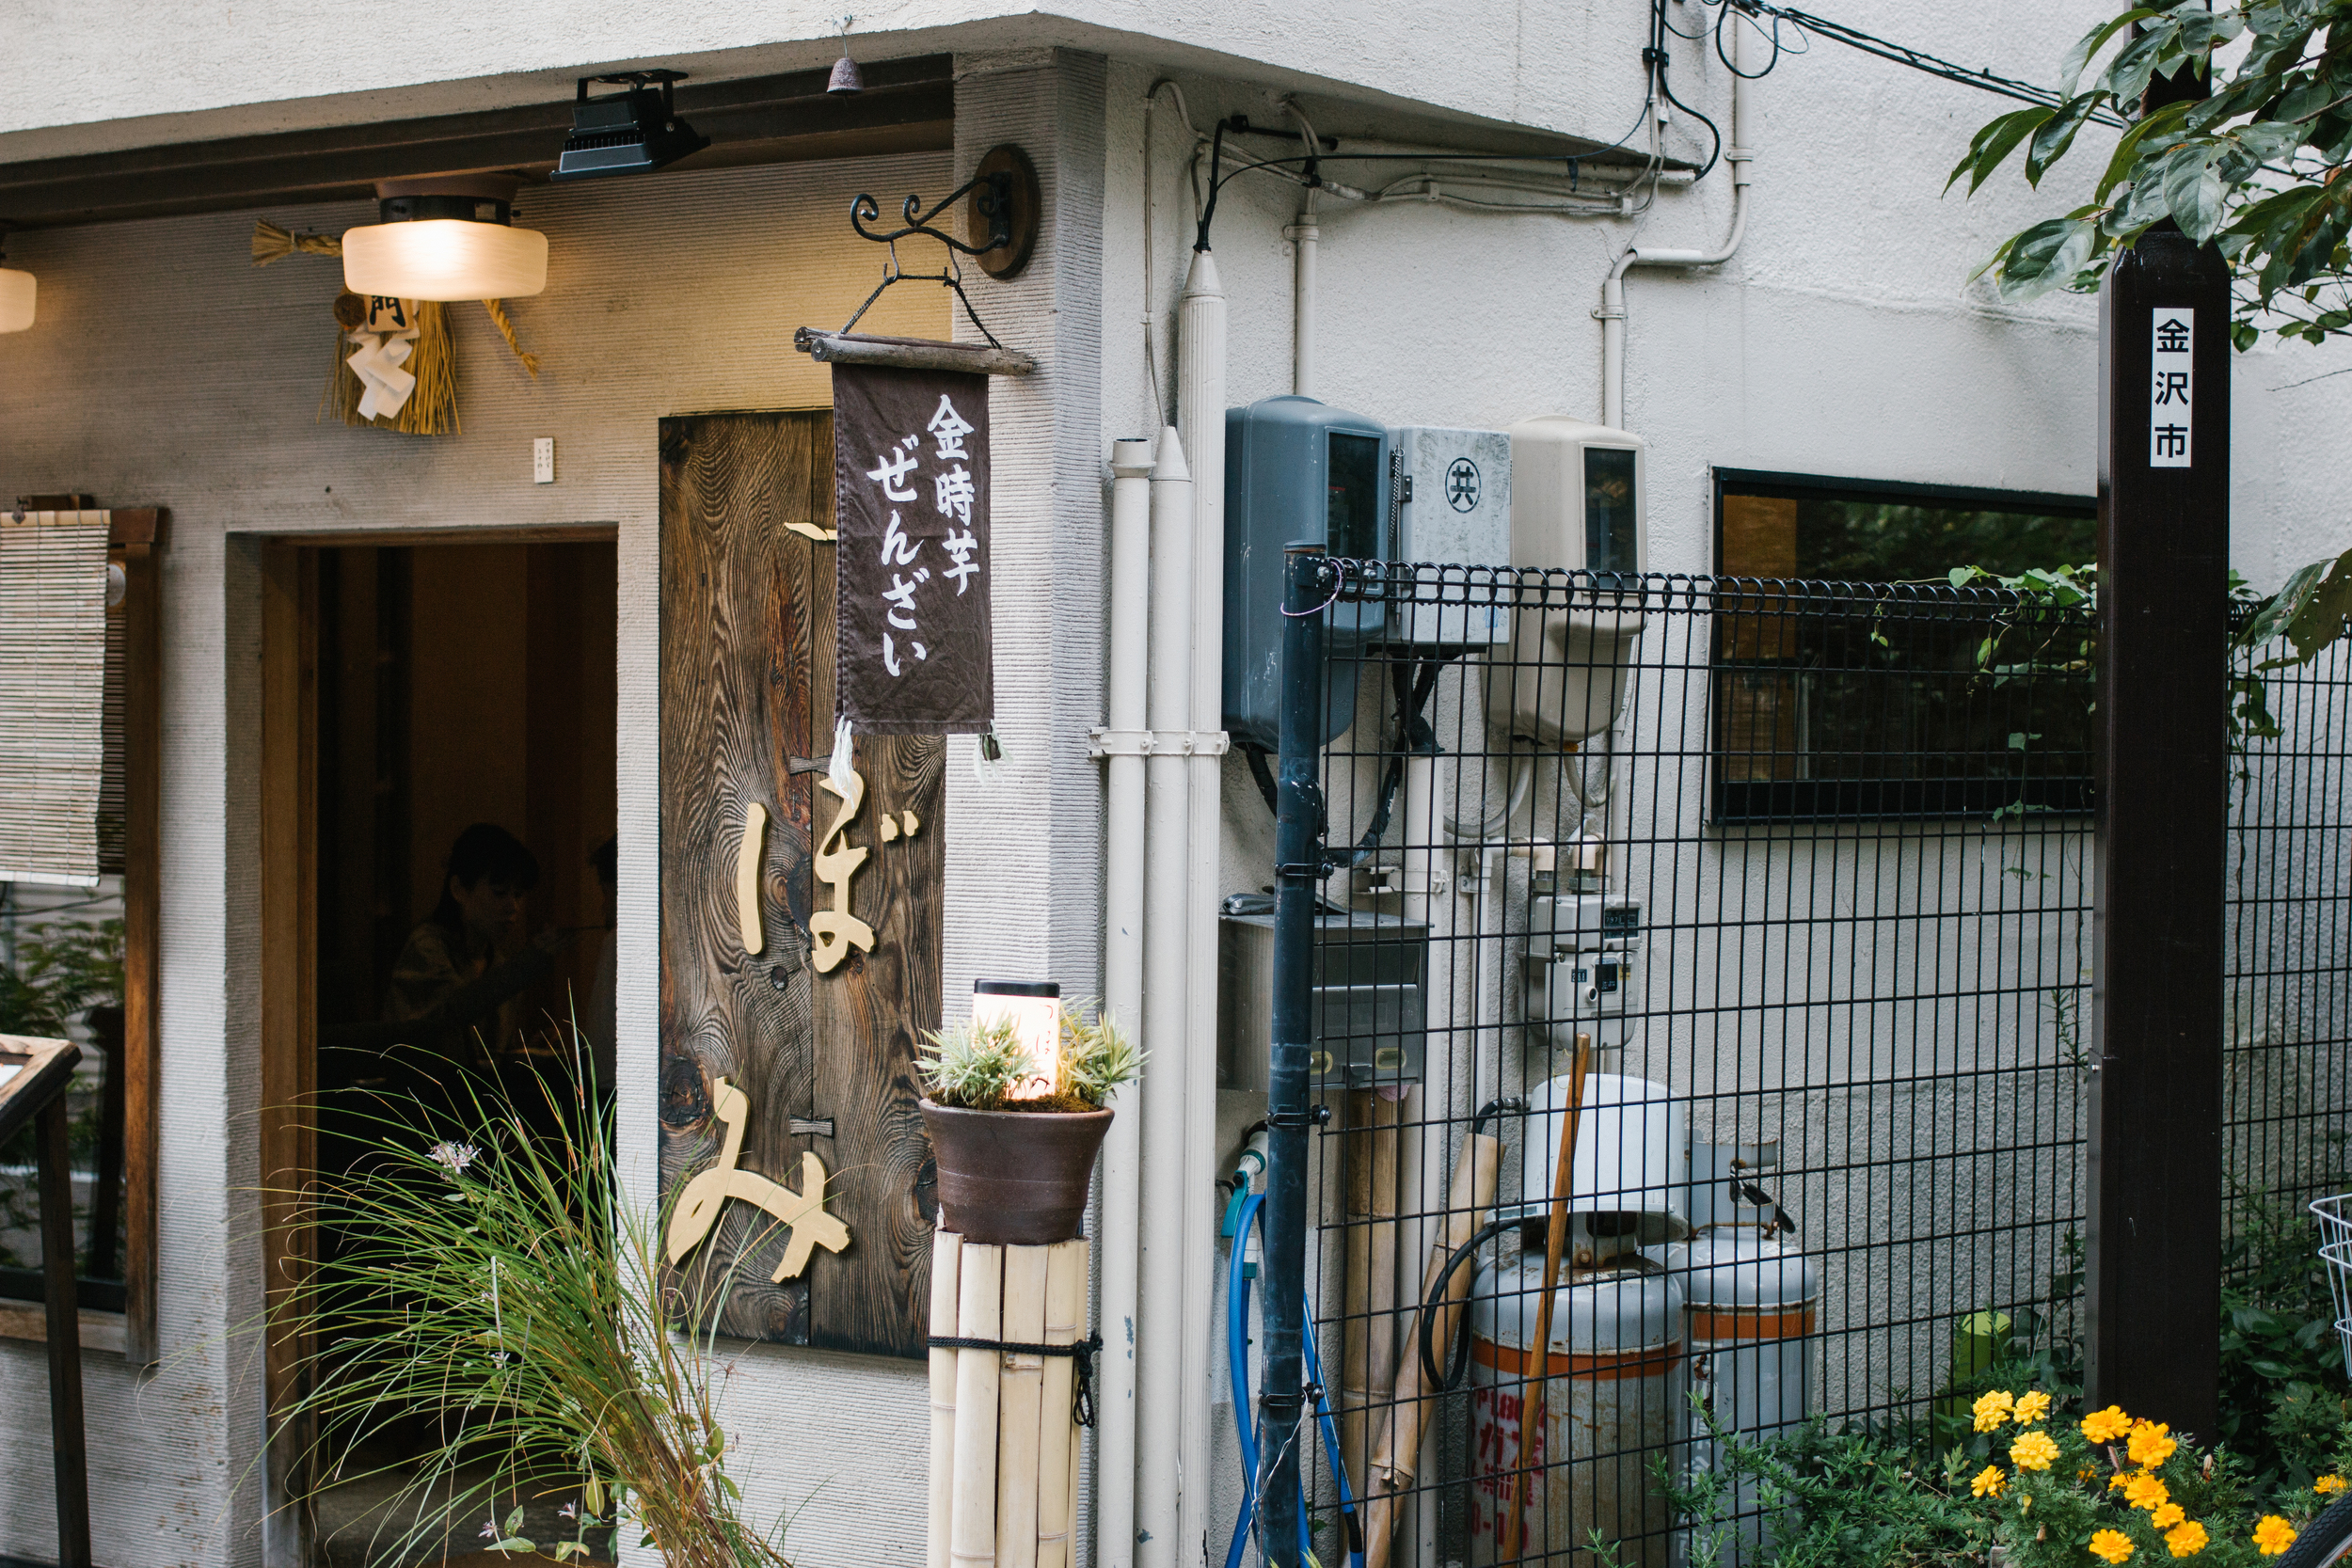 One of the best dessert shops  つぼみ  with a serene garden and pond in the back